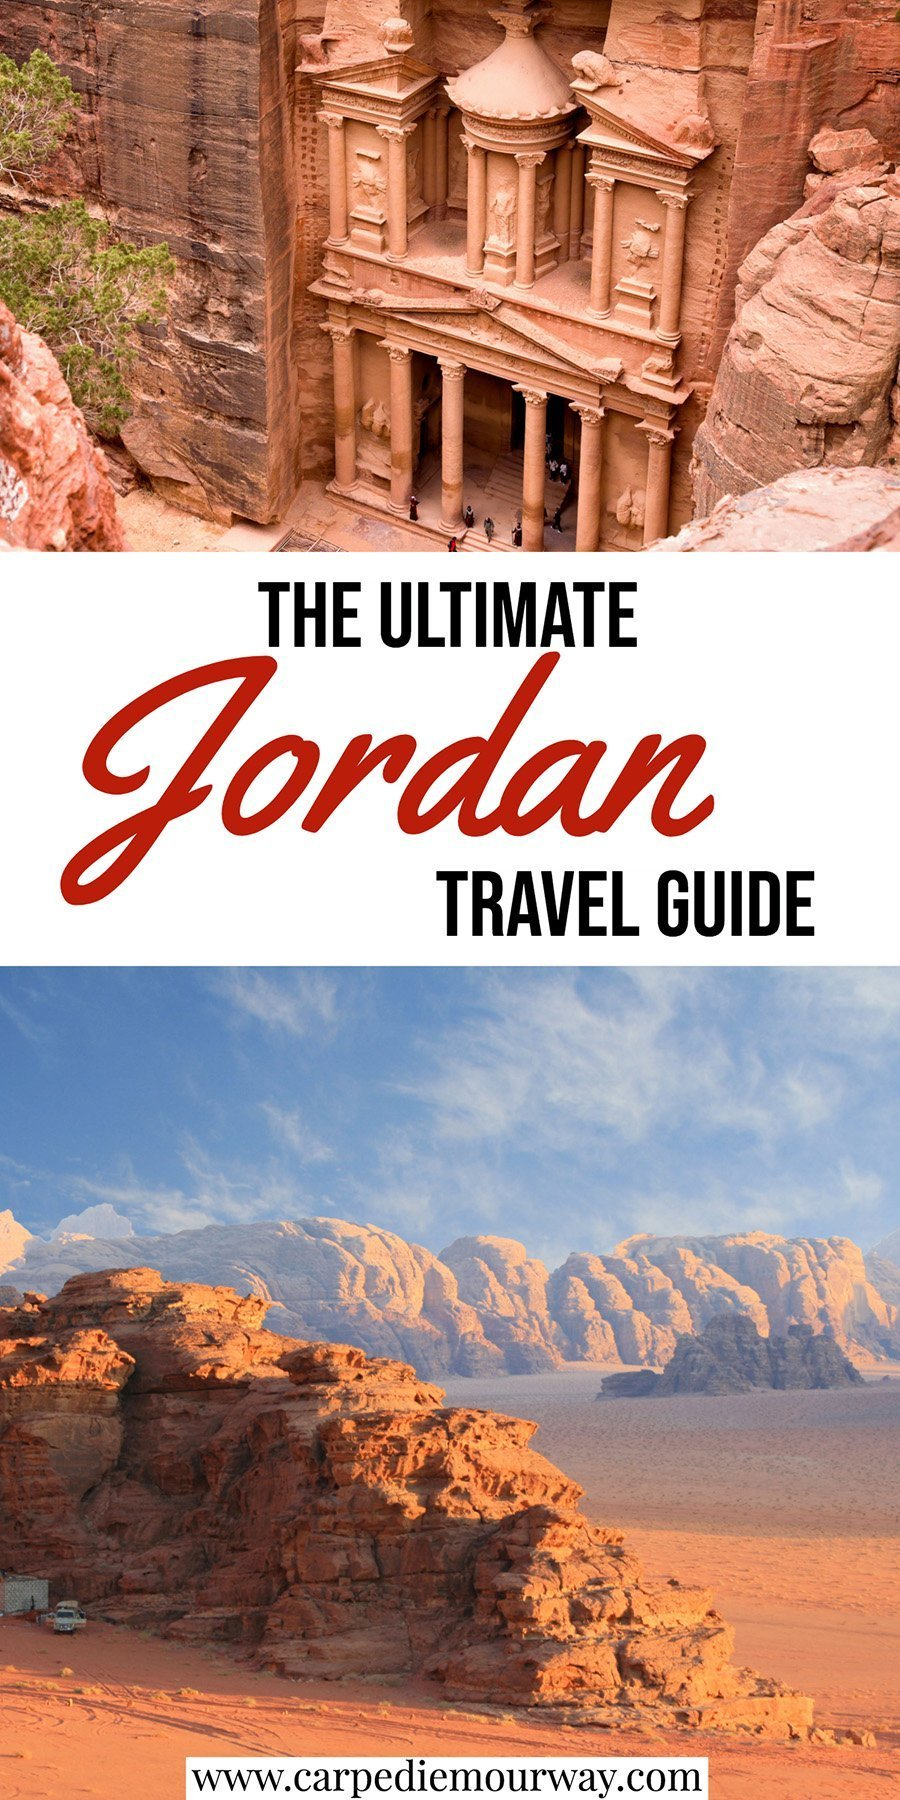 Jordan Travel Guide and Travel Blog